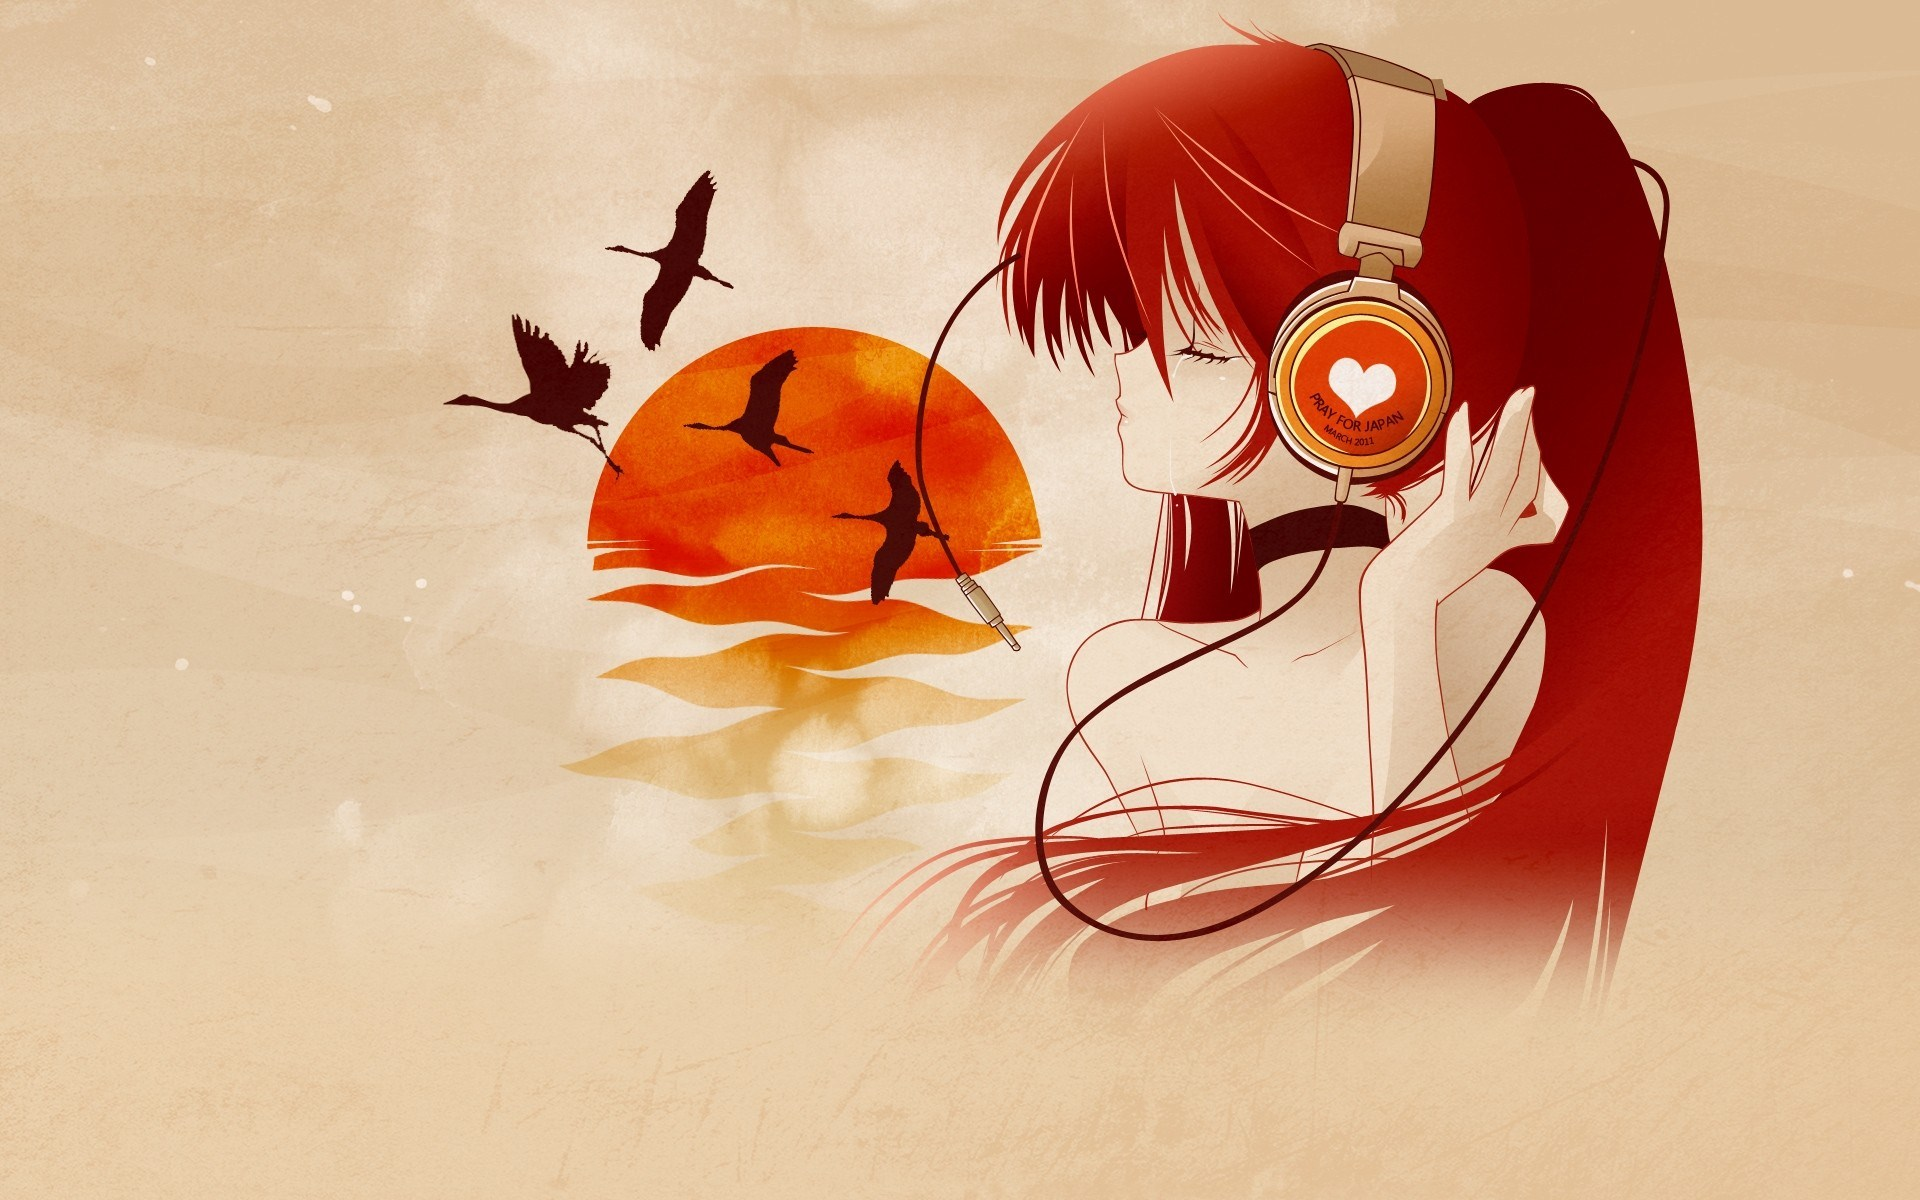 Drawn heart anime Wallpaper Headphones  With Heart